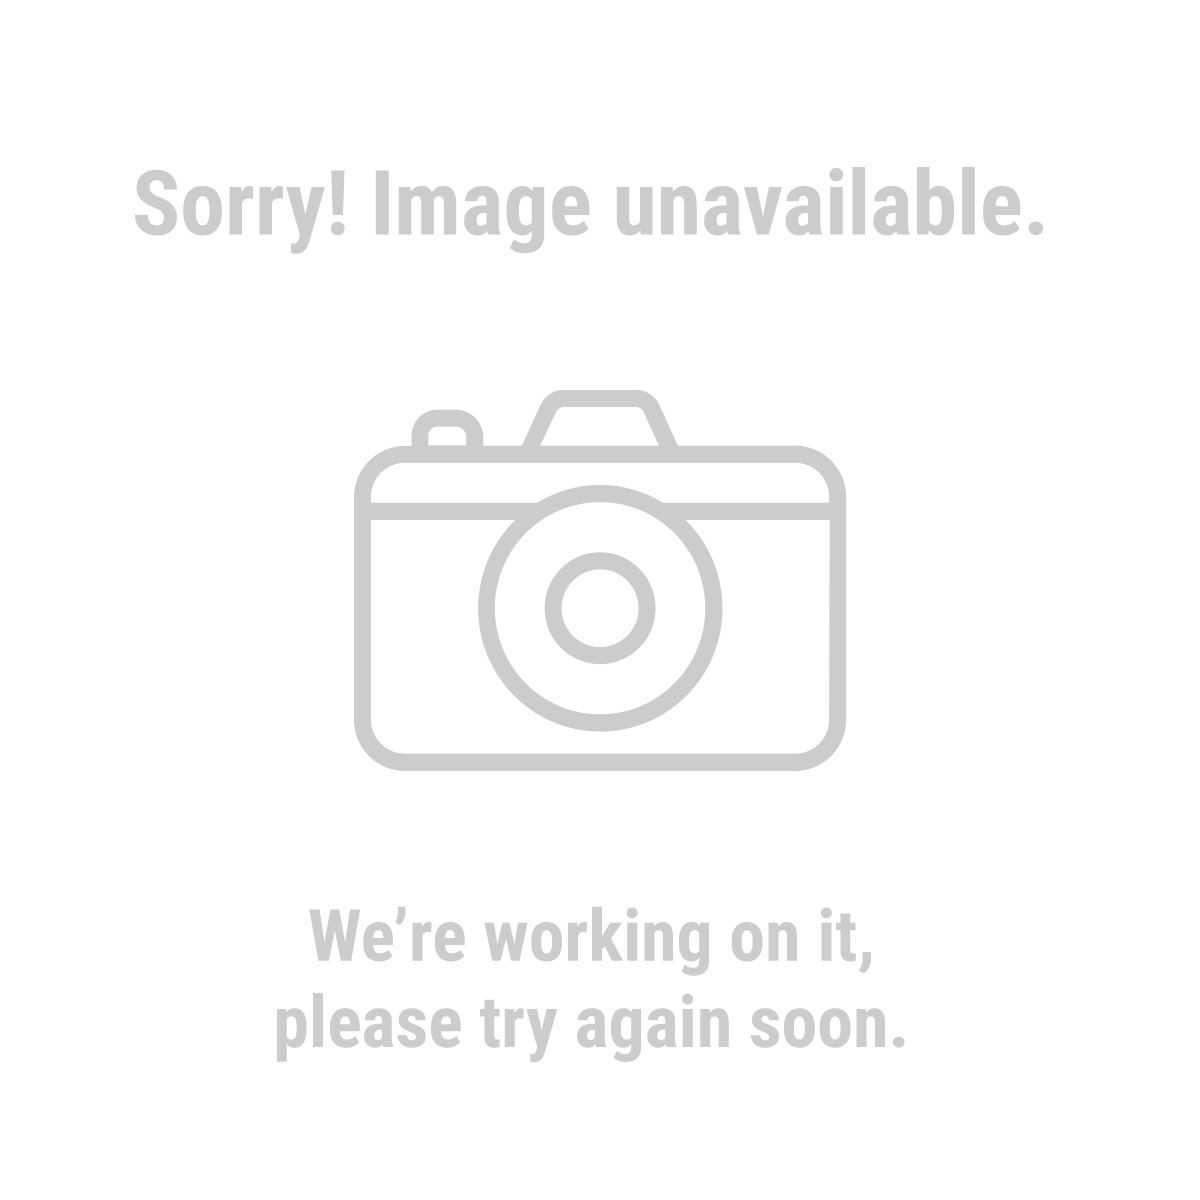 Central Pneumatic 68280 125 PSI Air Flow Regulator with Gauge